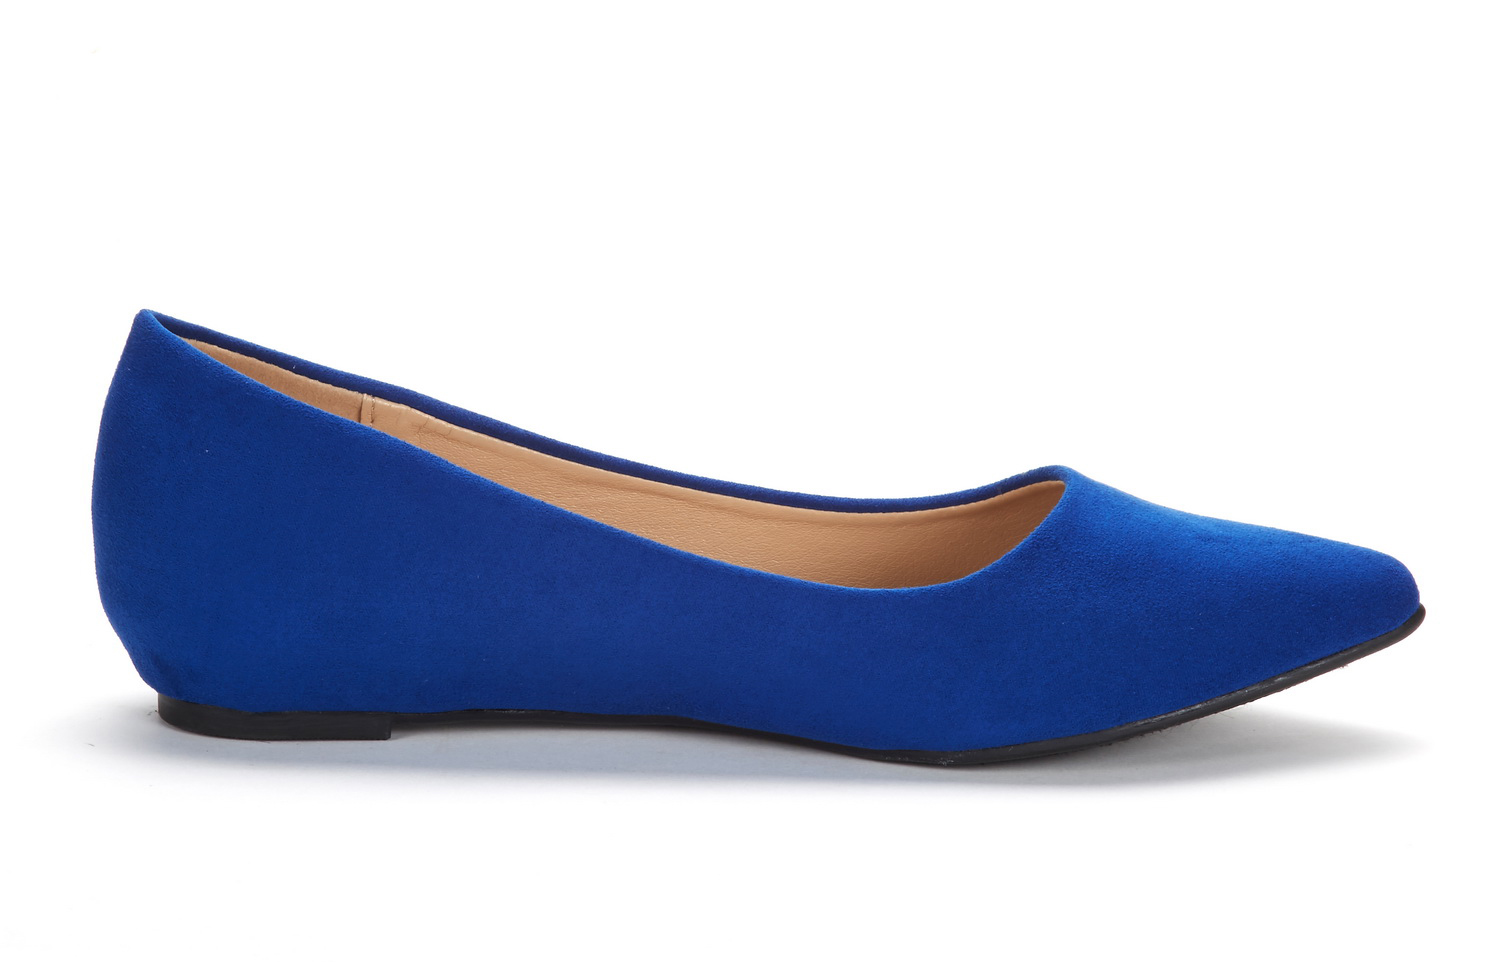 DREAM-PAIRS-Women-Low-Wedge-Flats-Ladies-Pointed-Toe-Slip-On-Comfort-Flat-Shoes thumbnail 16